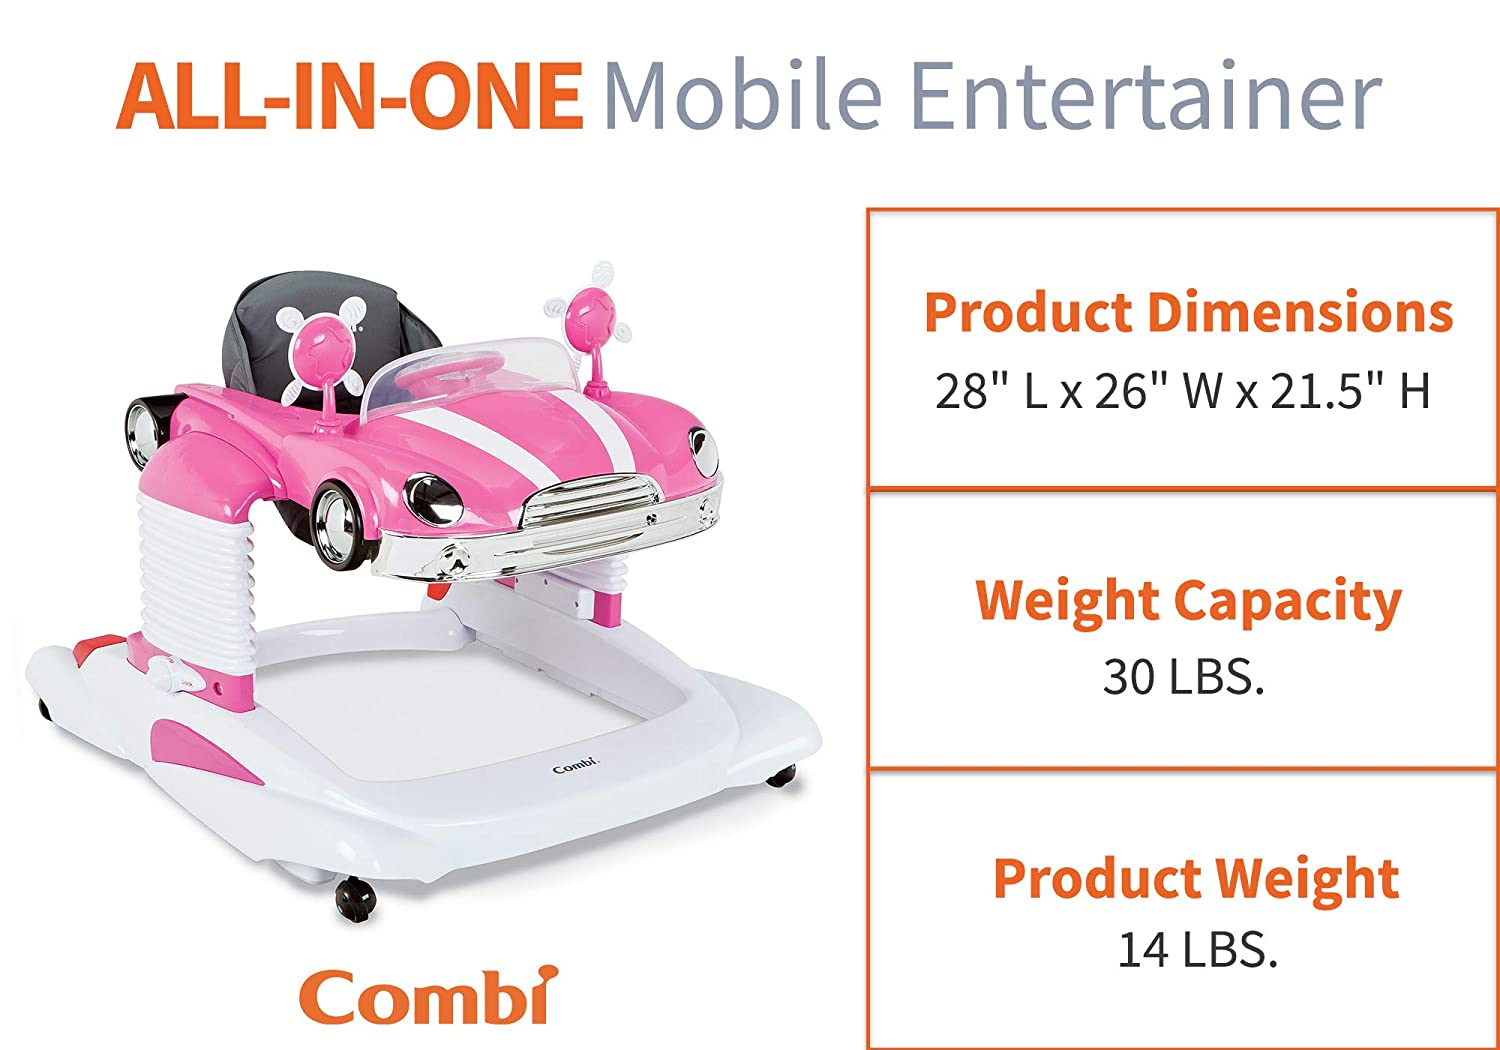 Mirrors for Development Stages| Anti-Skid Safety Feature Lights Combi Baby Walker and Interactive Mobile Activity Center with Quick Release Snack Tray Features Sounds Flower Power